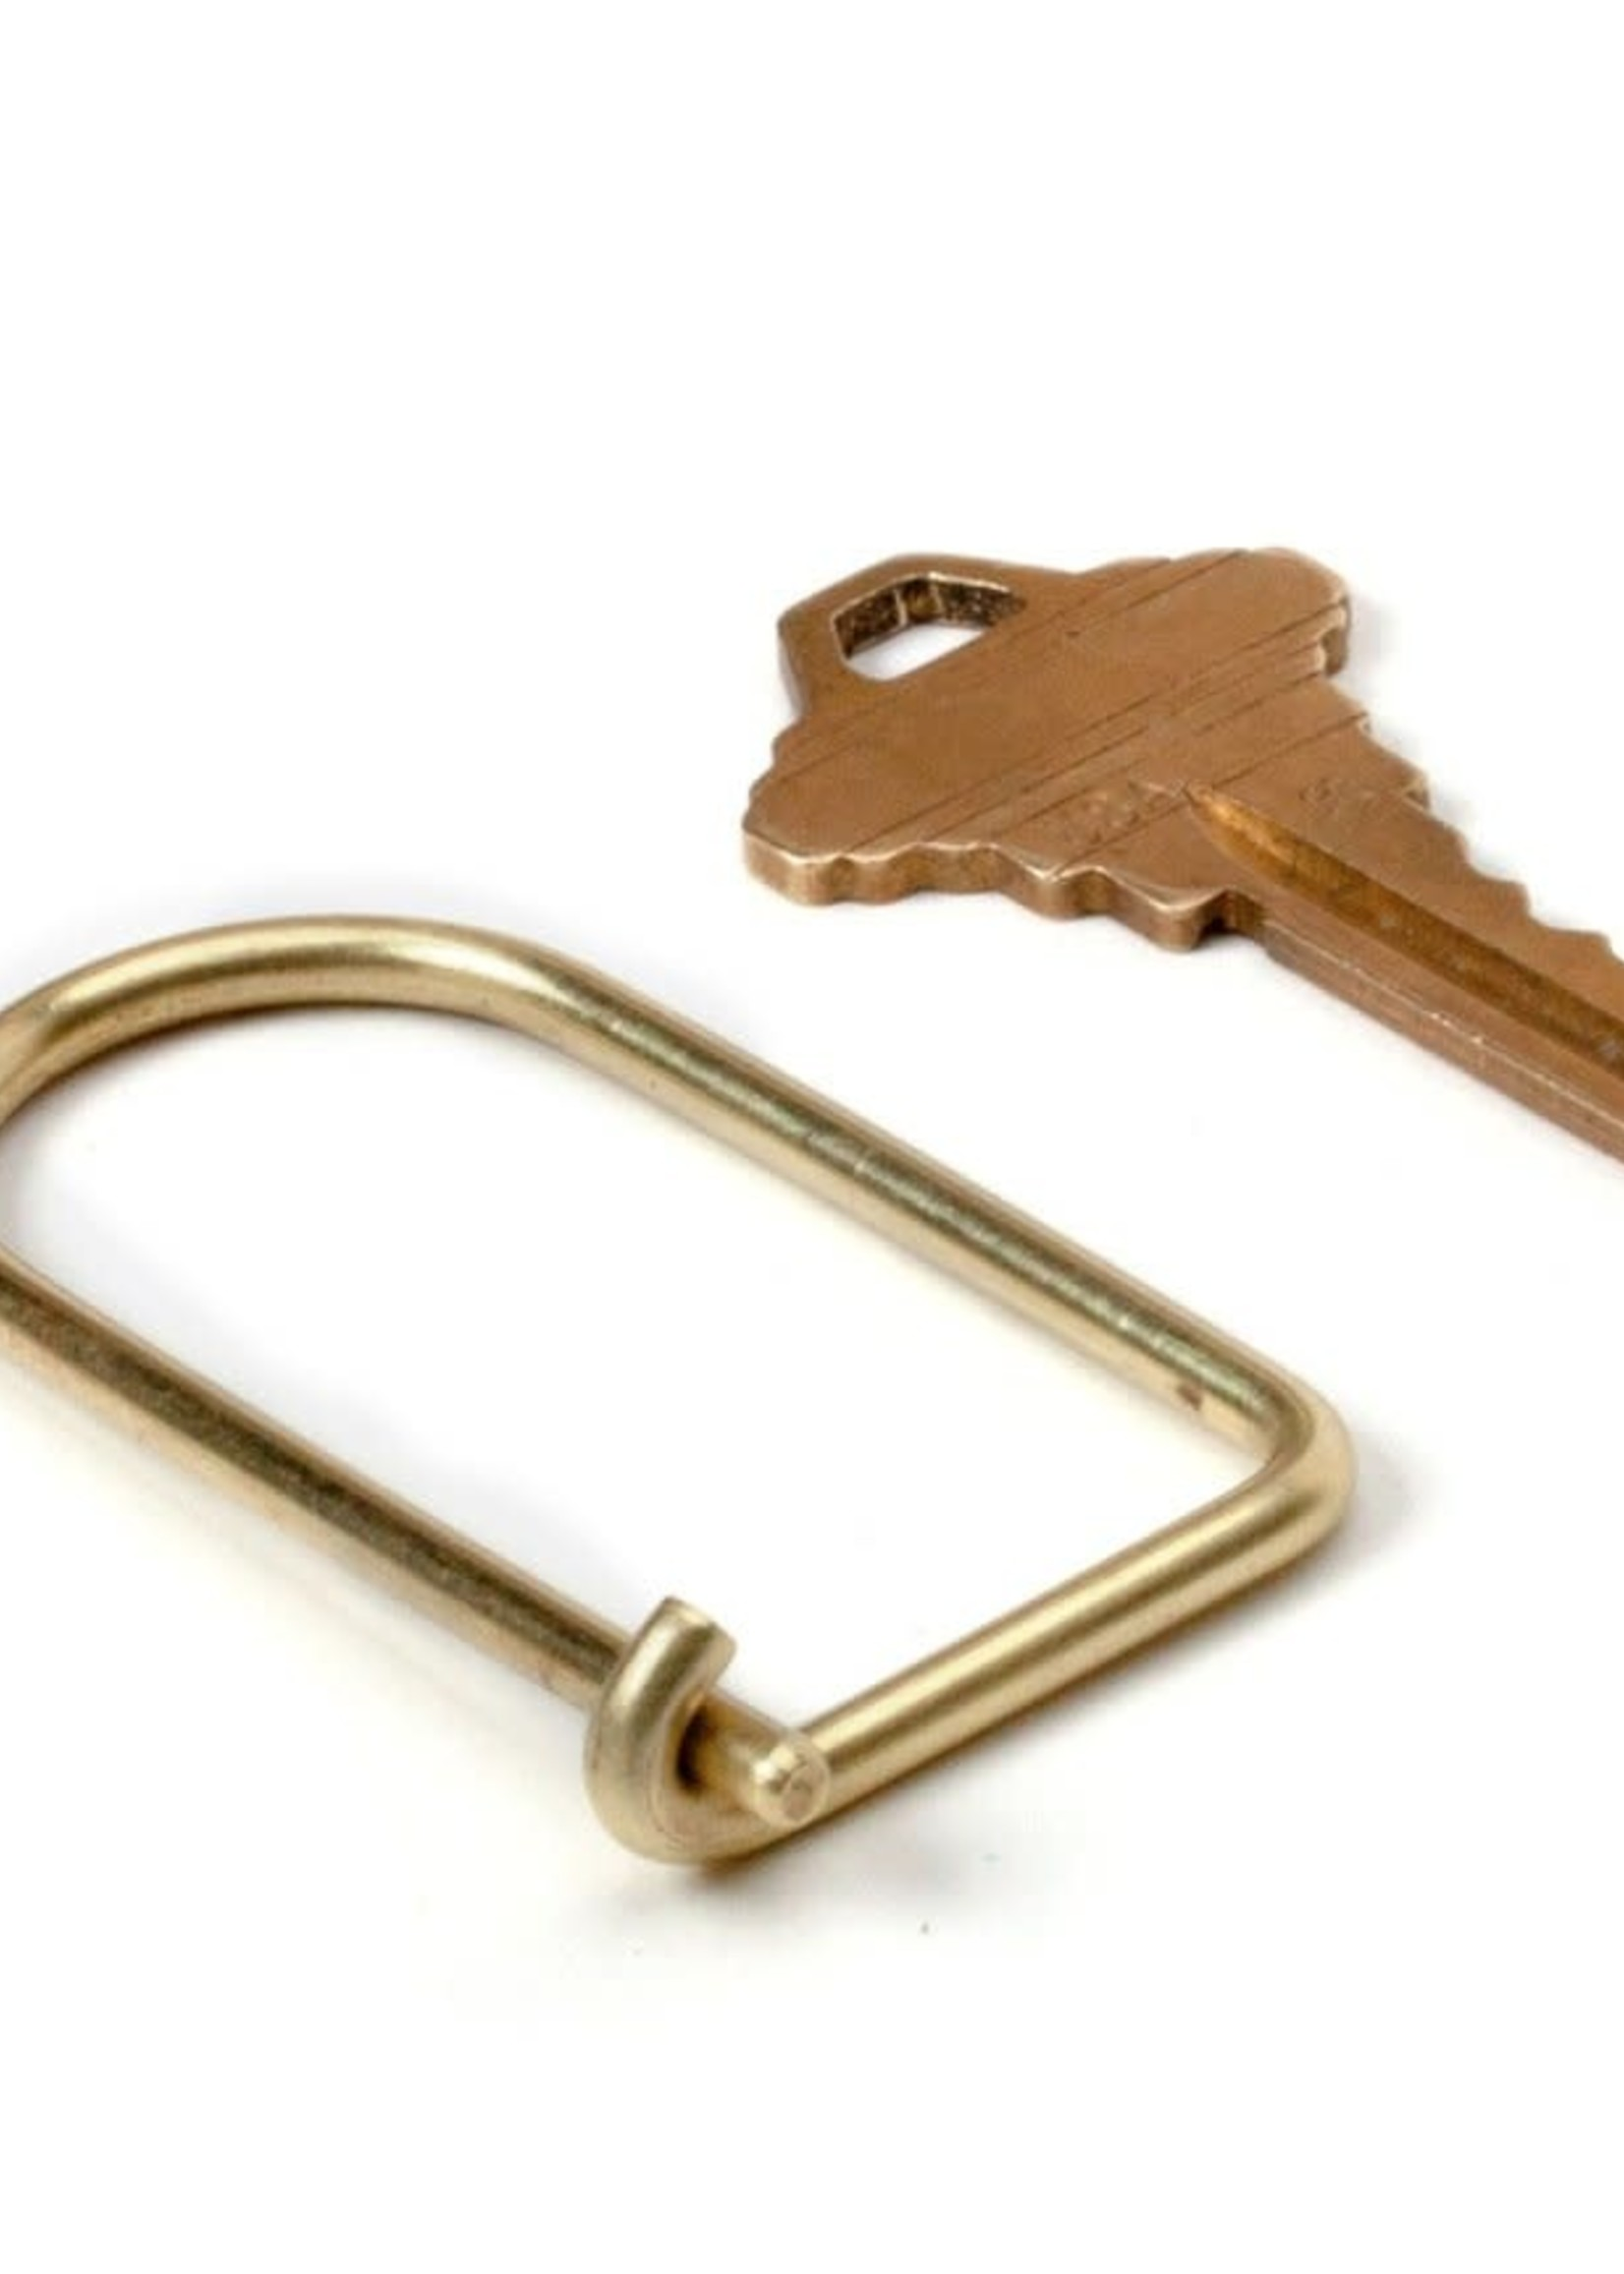 Craighill Wilson Key ring in Brass